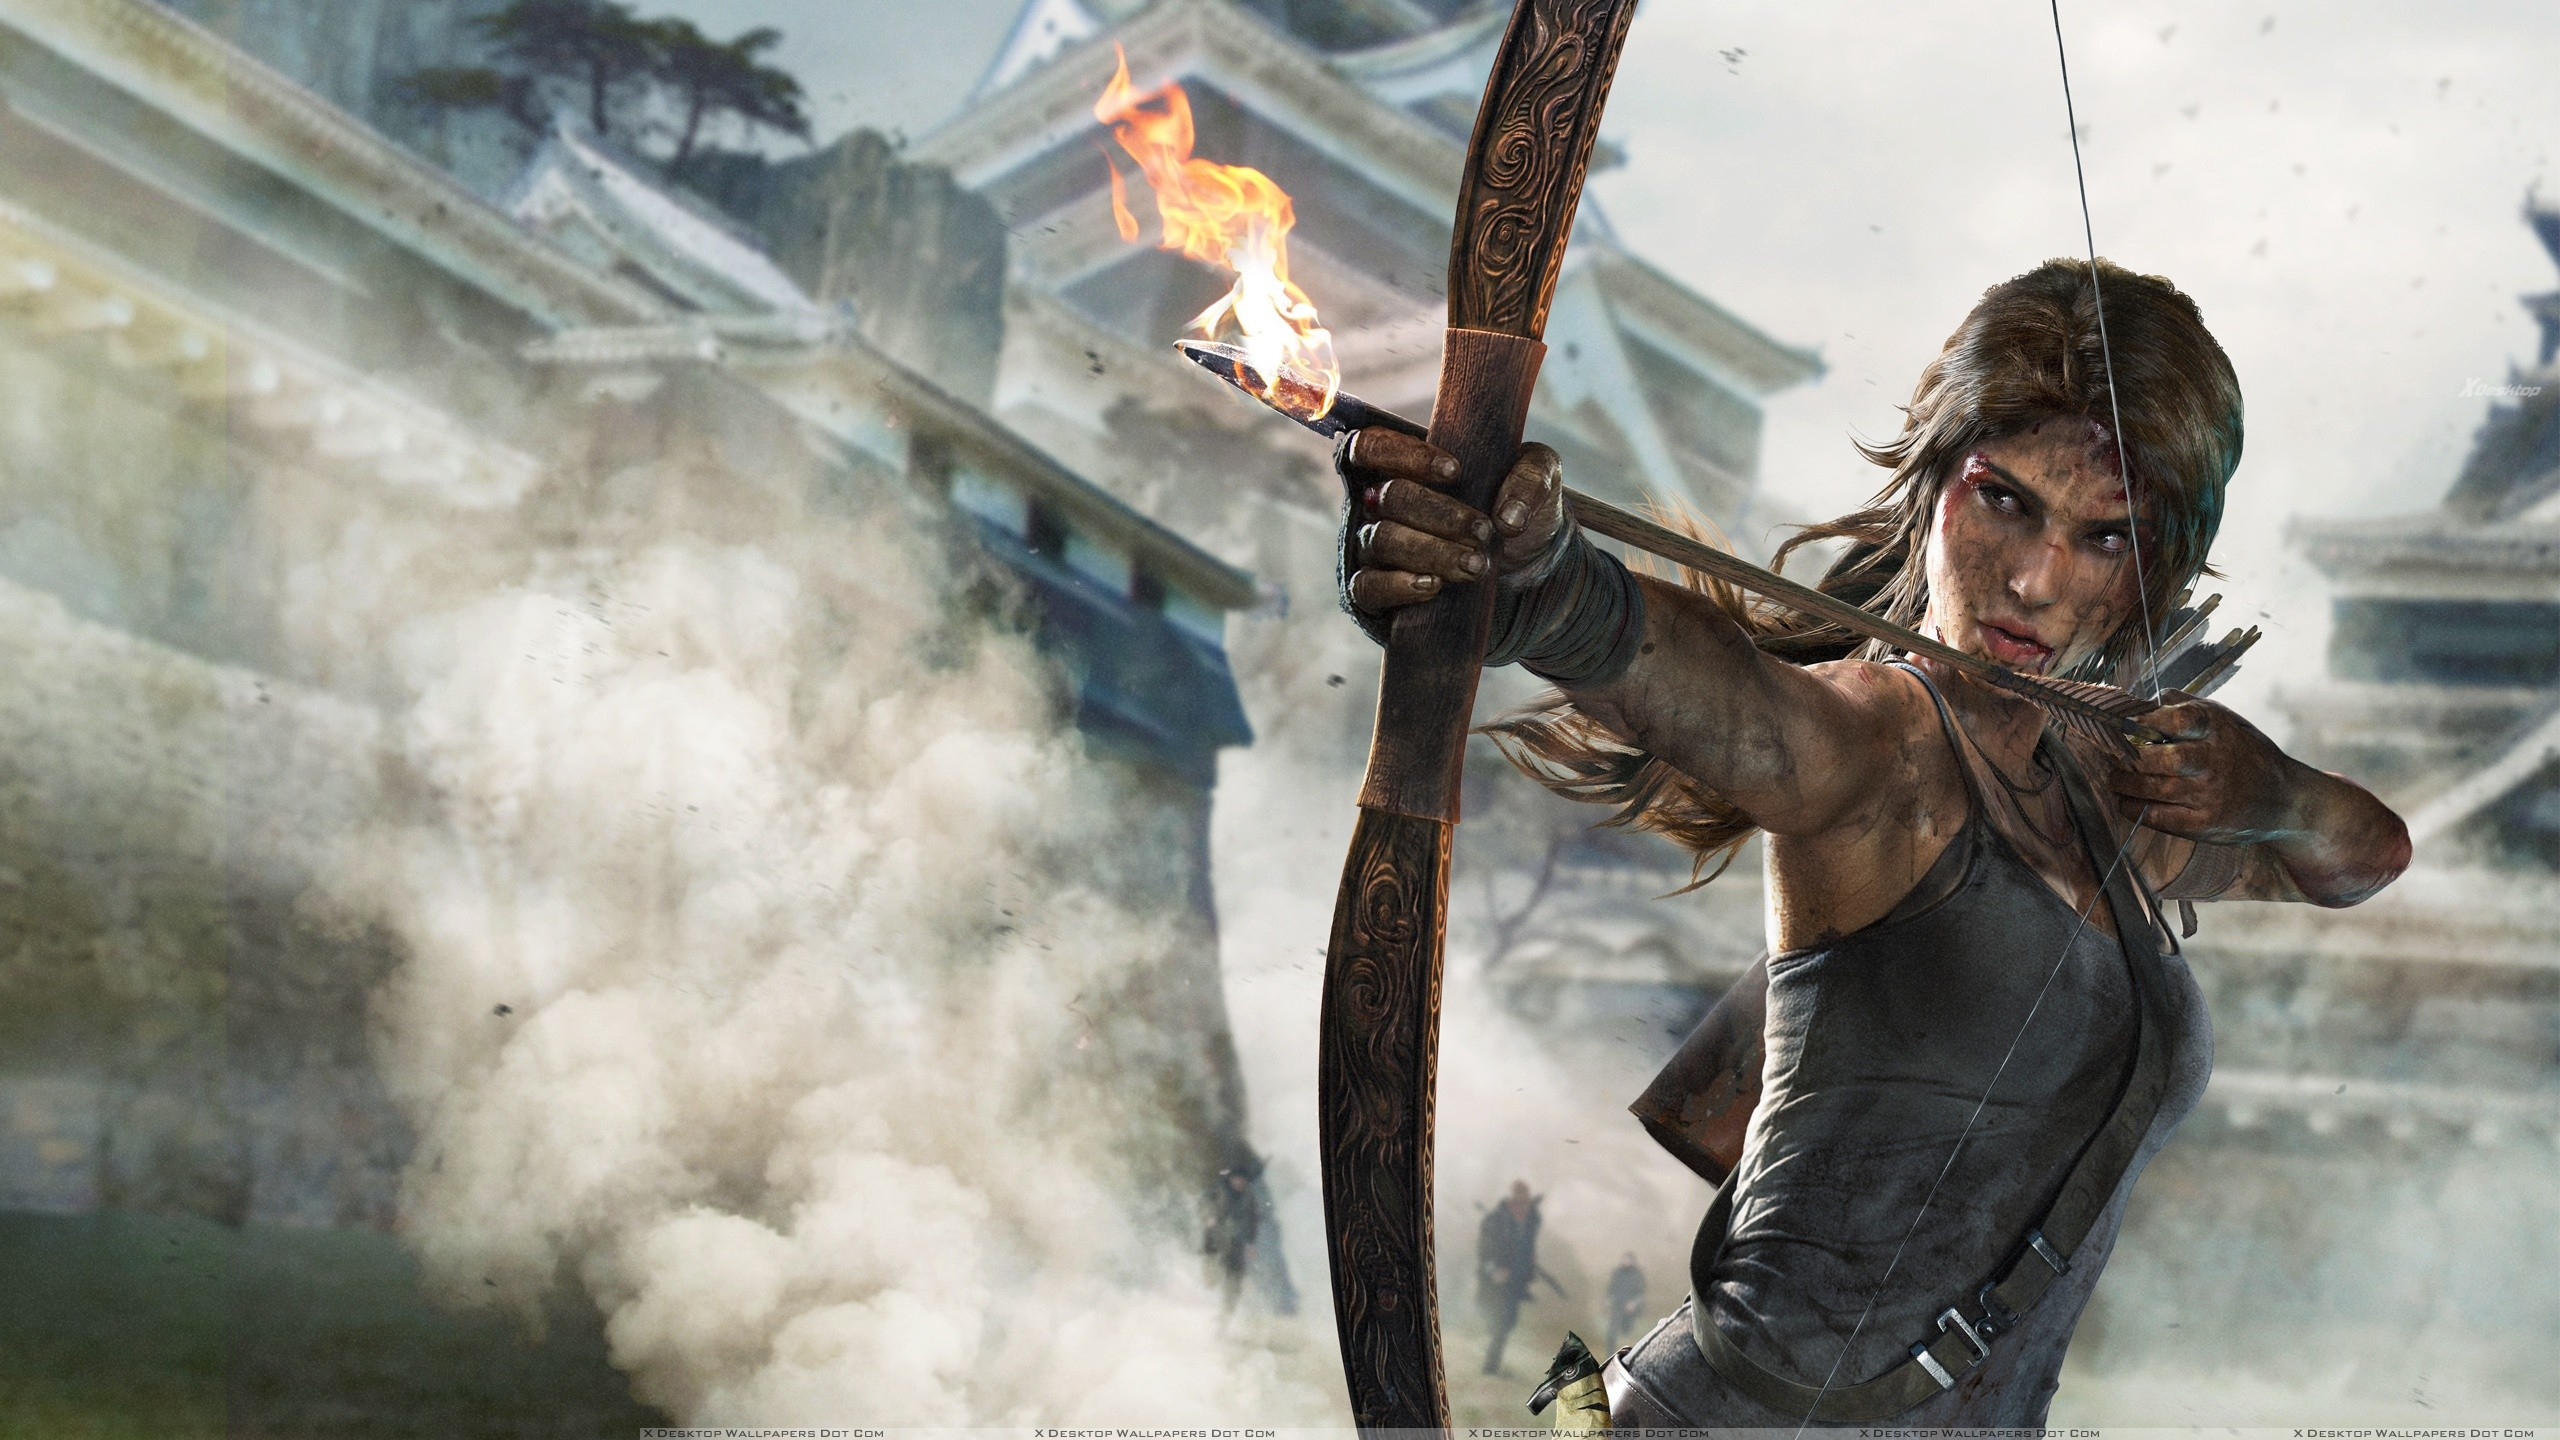 http://xdesktopwallpapers.com/wp-content/uploads/2014/01/Lara-Croft-With-A-Bow-Angry-Face-In-Tomb-Raider.jpg